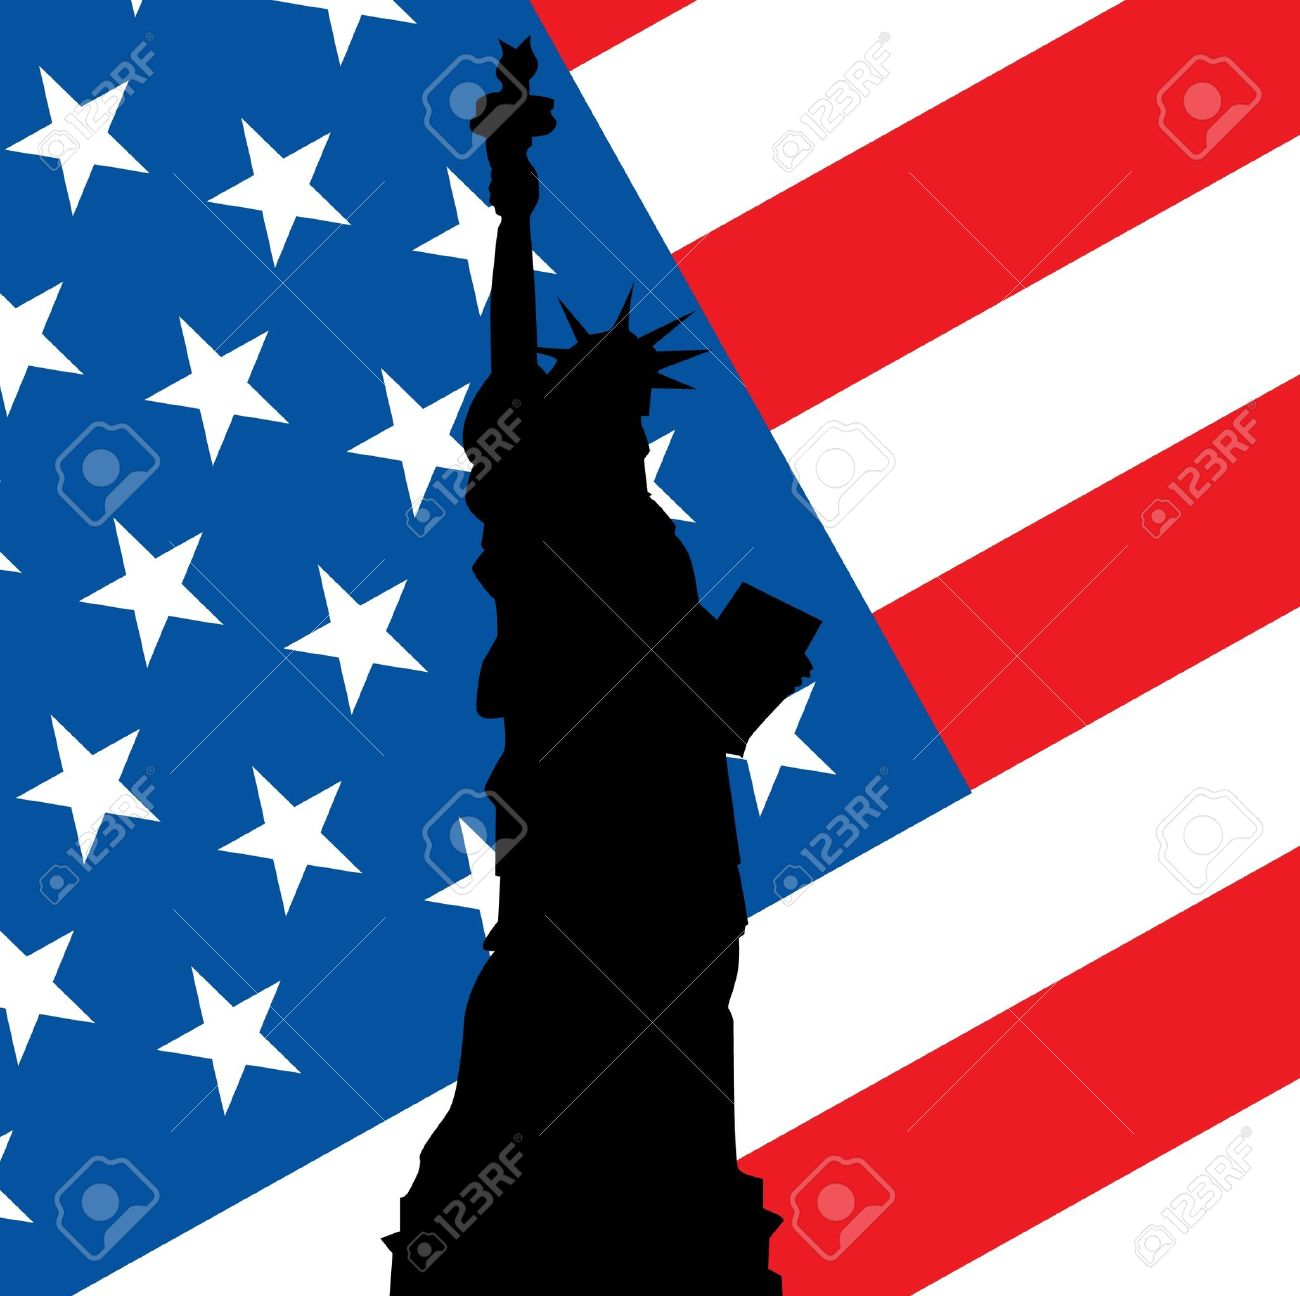 statue of liberty on use flag illustration Stock Vector - 12450103